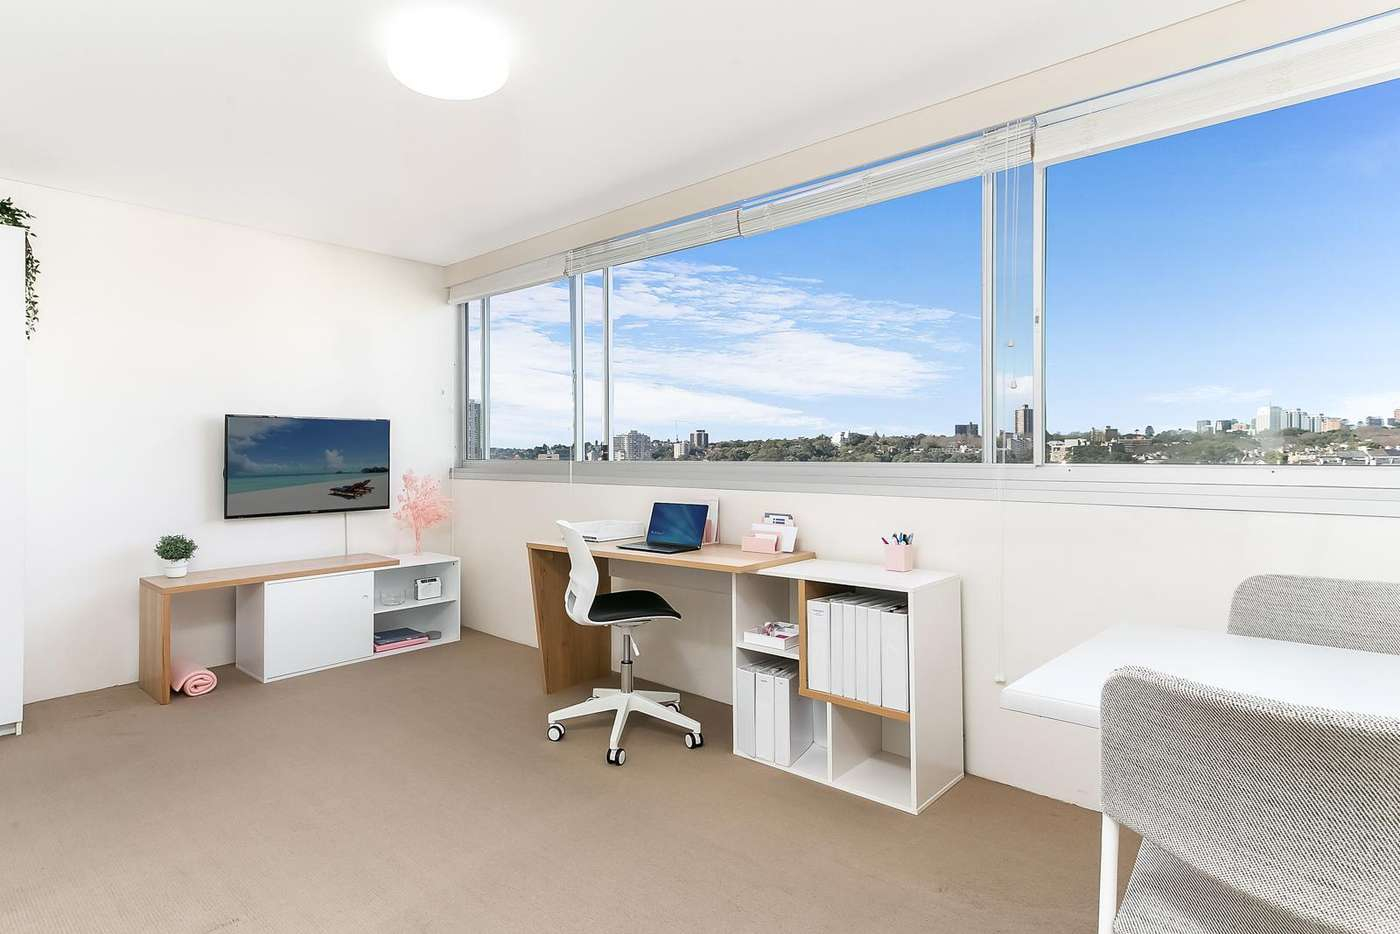 Main view of Homely apartment listing, 703/176 Glenmore Road, Paddington NSW 2021